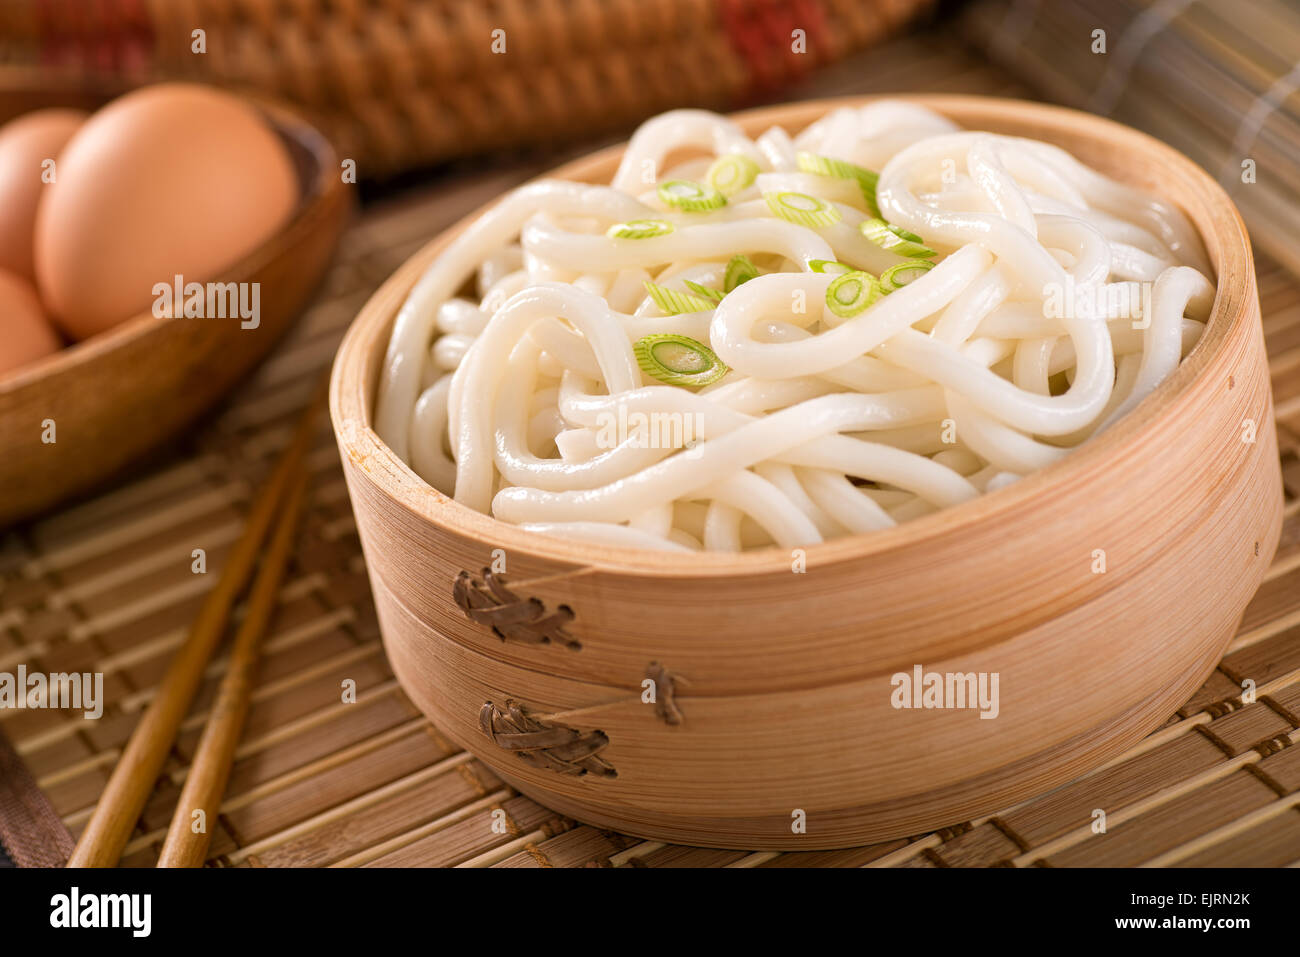 Delicious Japanese udon noodles with green onion. - Stock Image